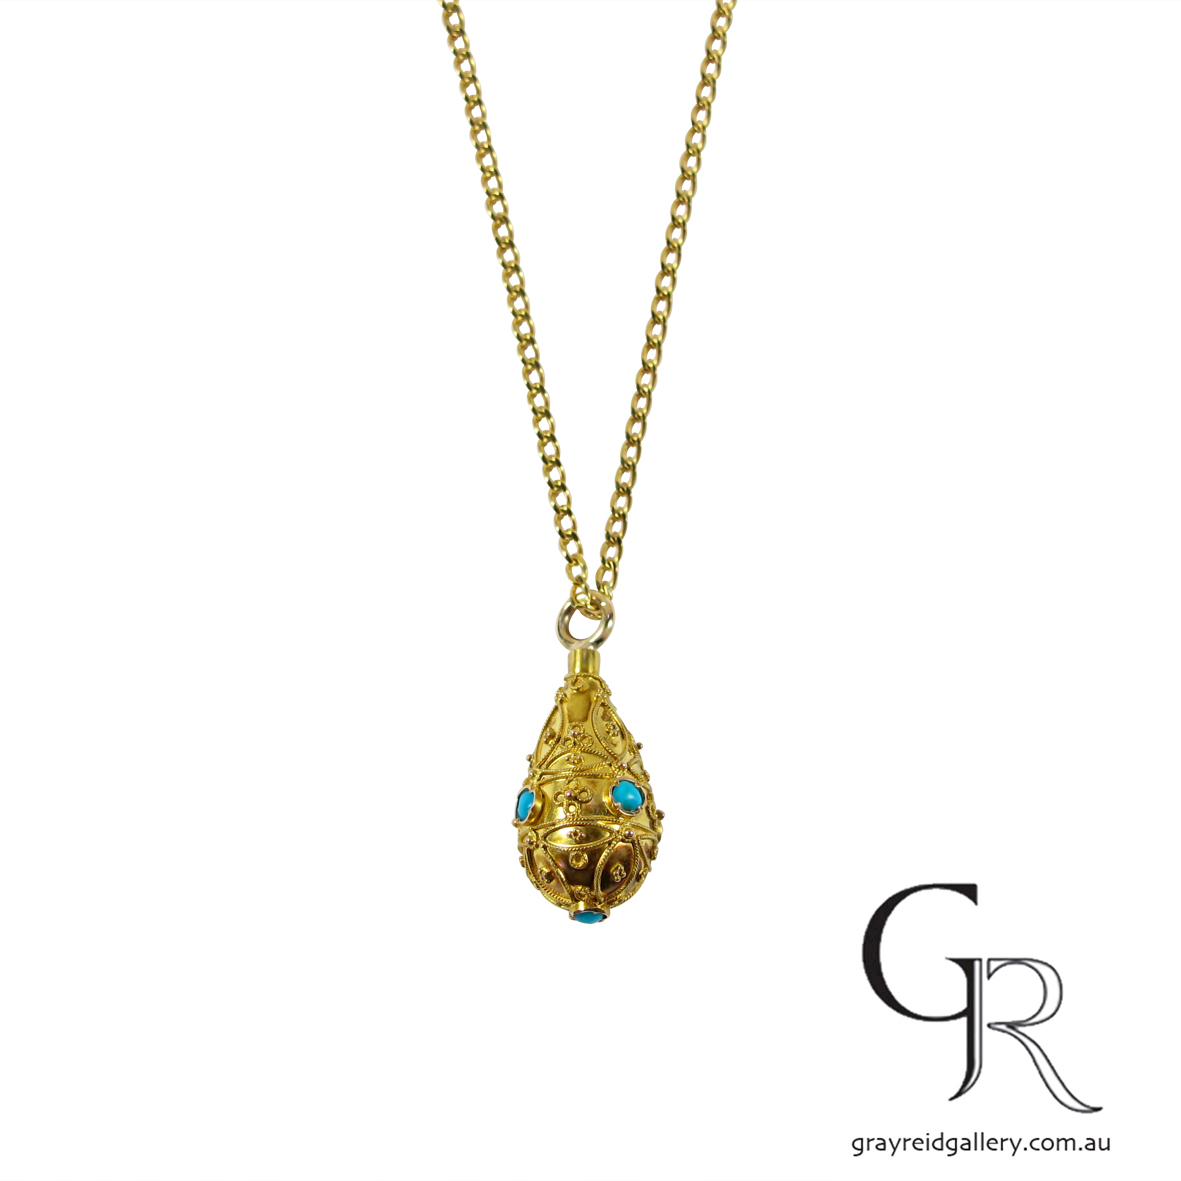 gold and Turquoise victorian pendant Melbourne Gray Reid Gallery34.jpg